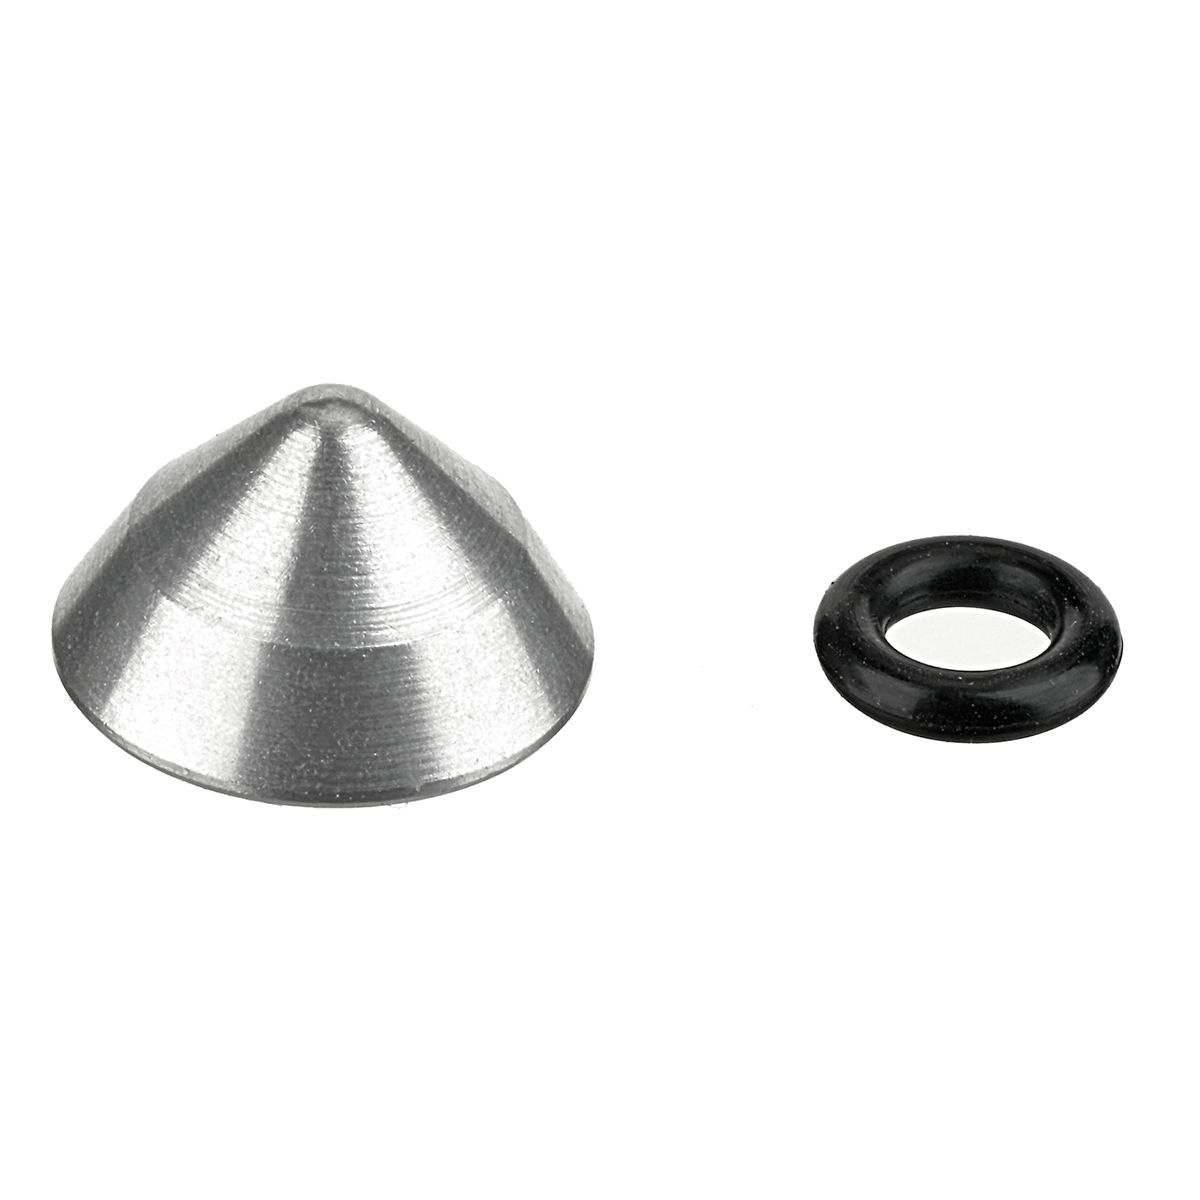 Pitlock End cap cover for M5 security lock | Styrpropper